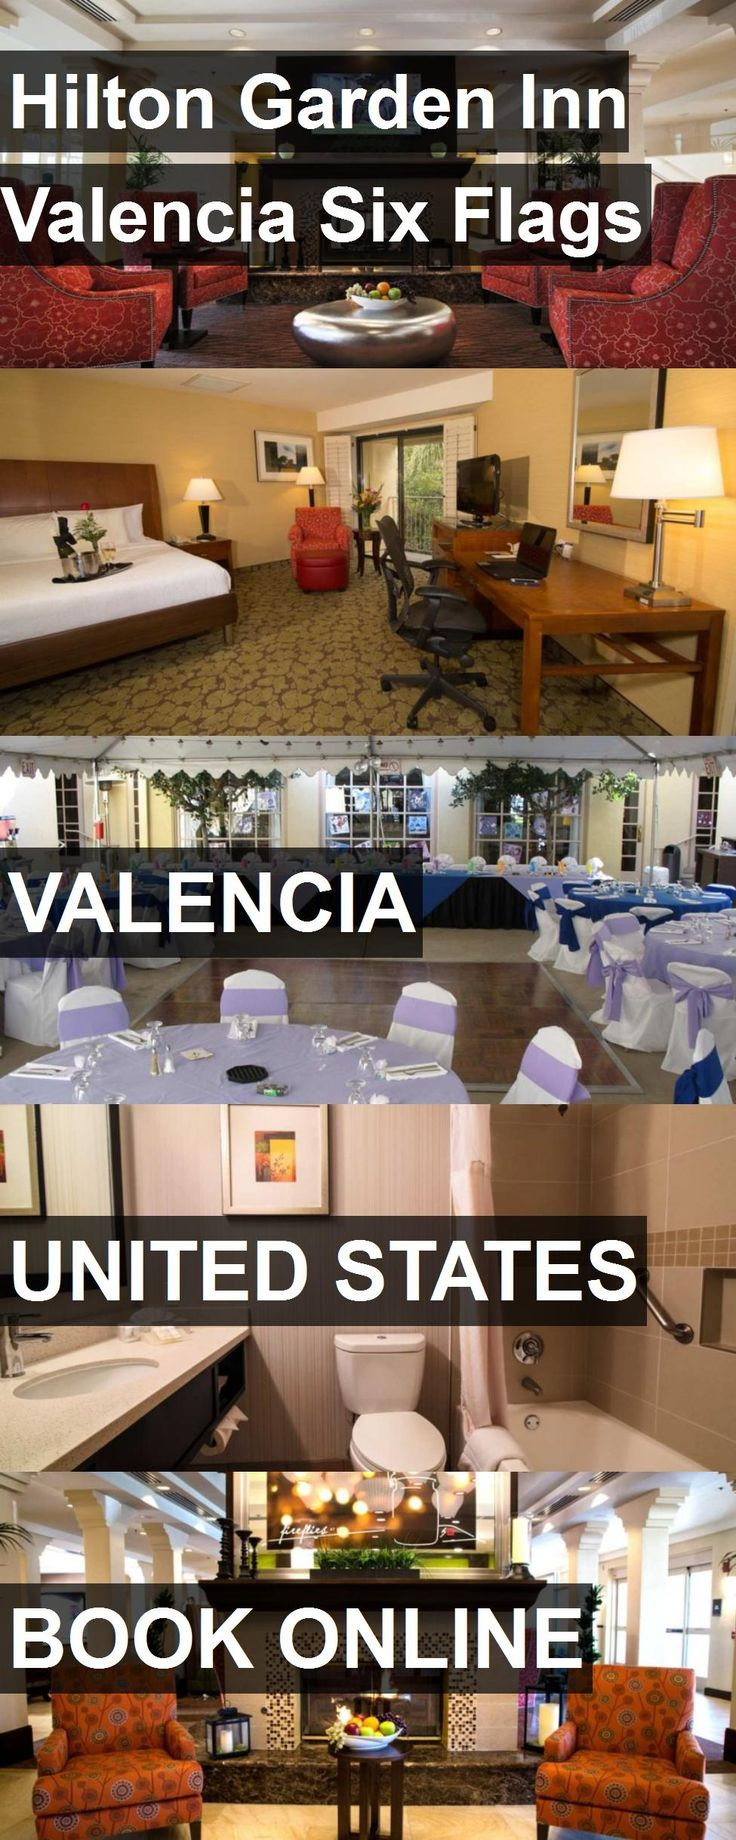 Hotel Hilton Garden Inn Valencia Six Flags in Valencia, United States. For more information, photos, reviews and best prices please follow the link. #UnitedStates #Valencia #travel #vacation #hotel